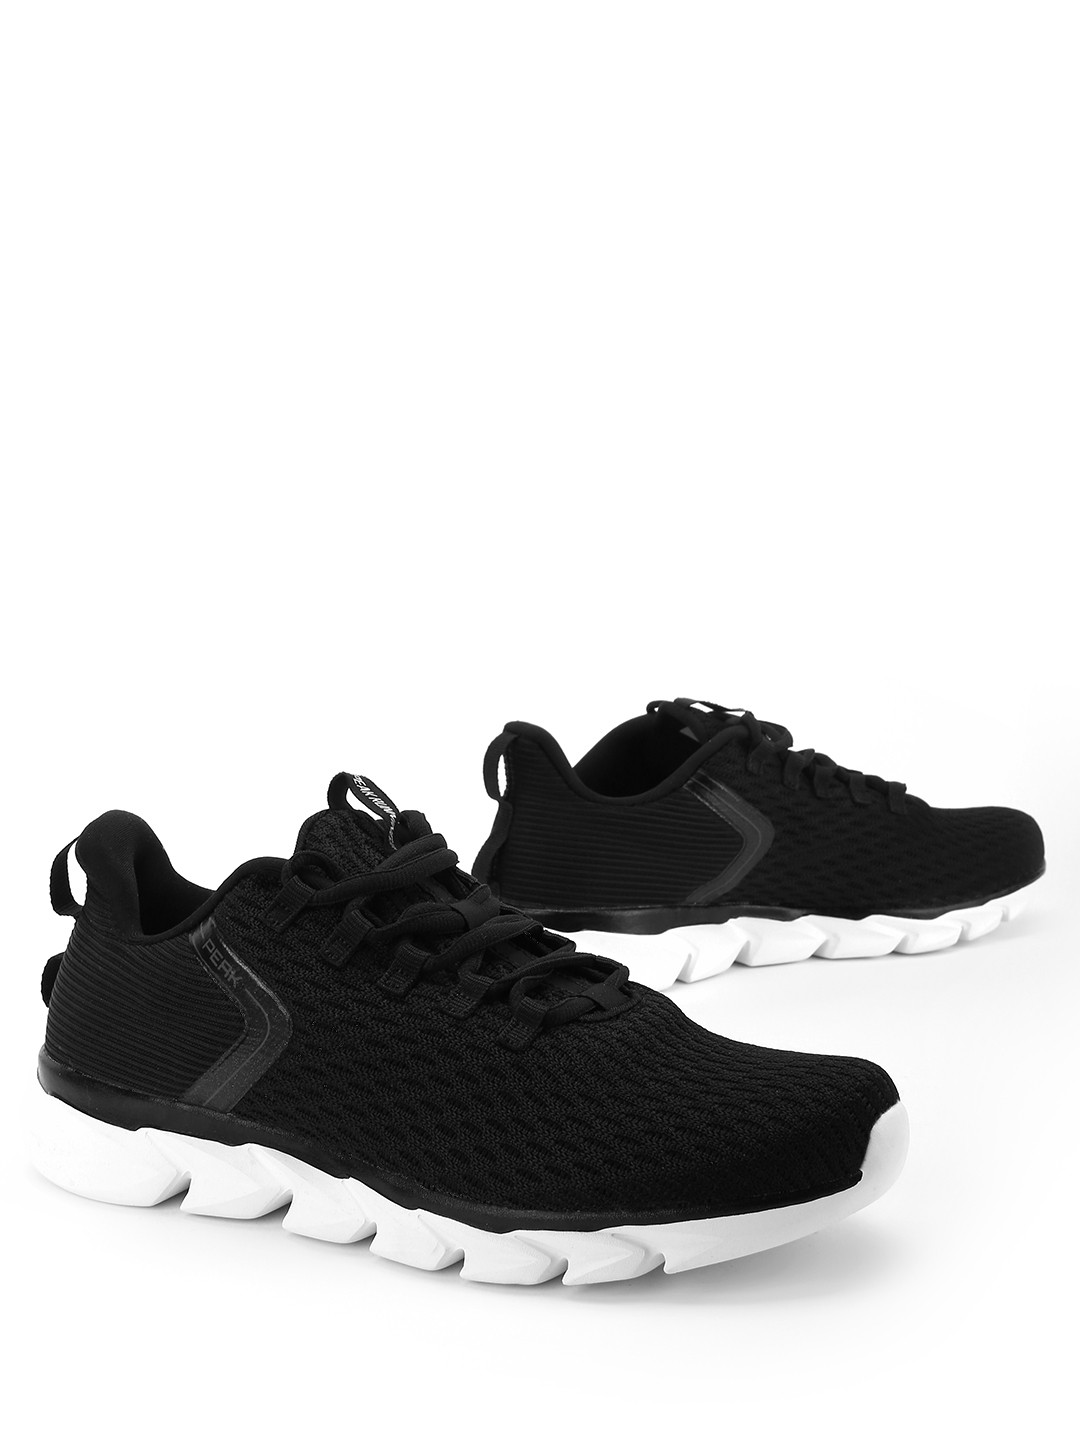 Peak Black Double Knit Running Shoes 1